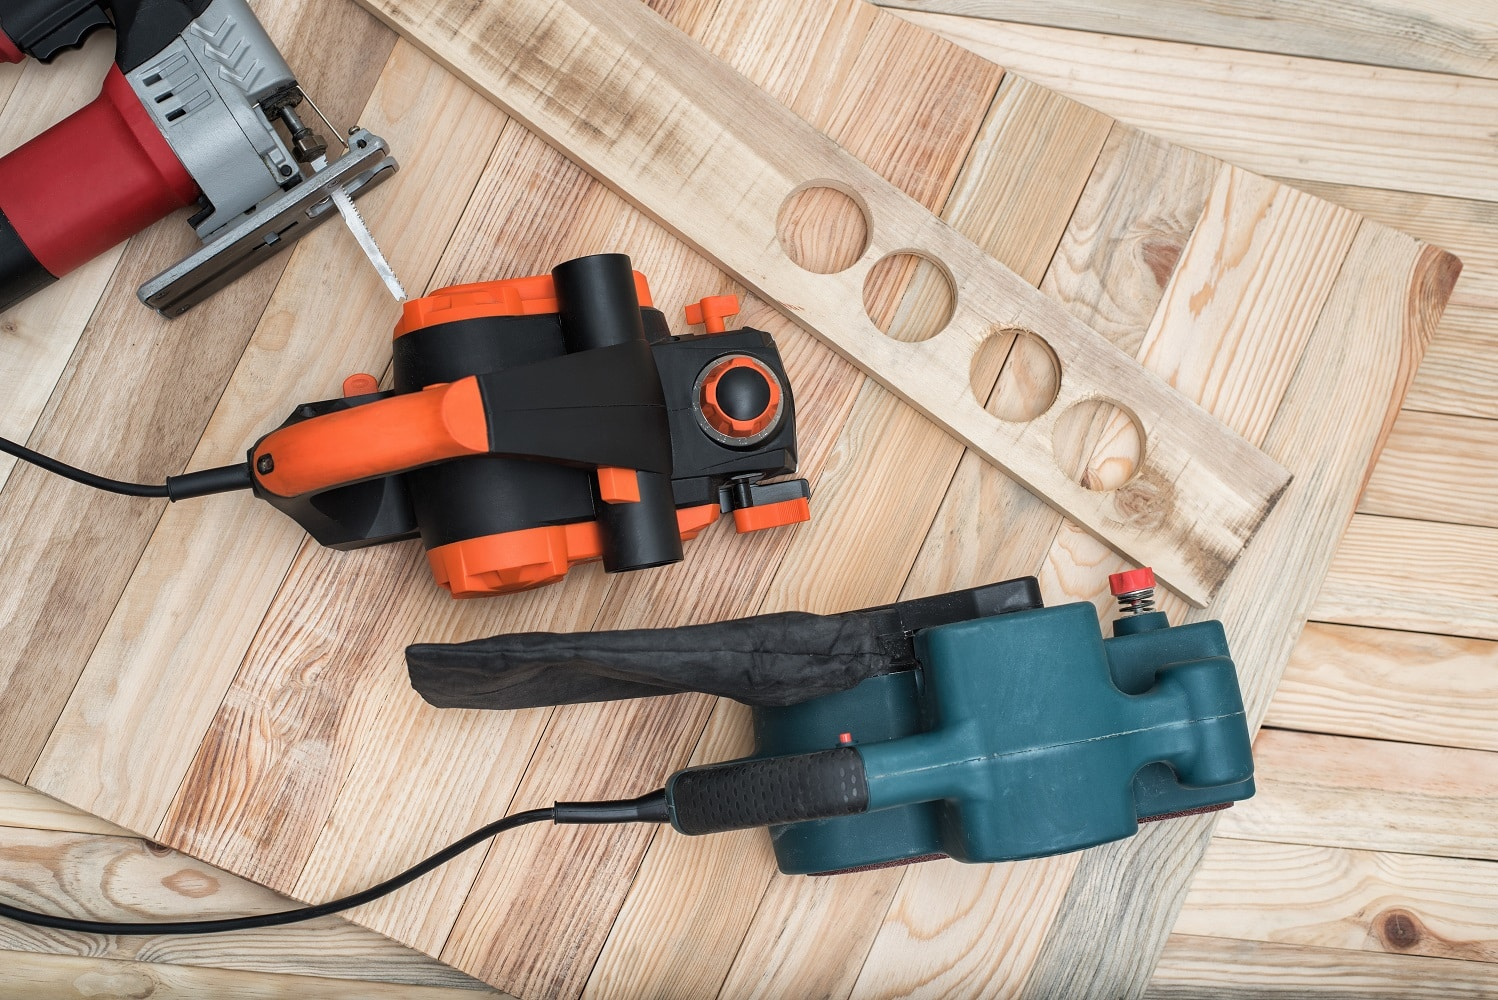 Set of handheld woodworking power tools for woodworking and the workpiece lies on a light wooden background